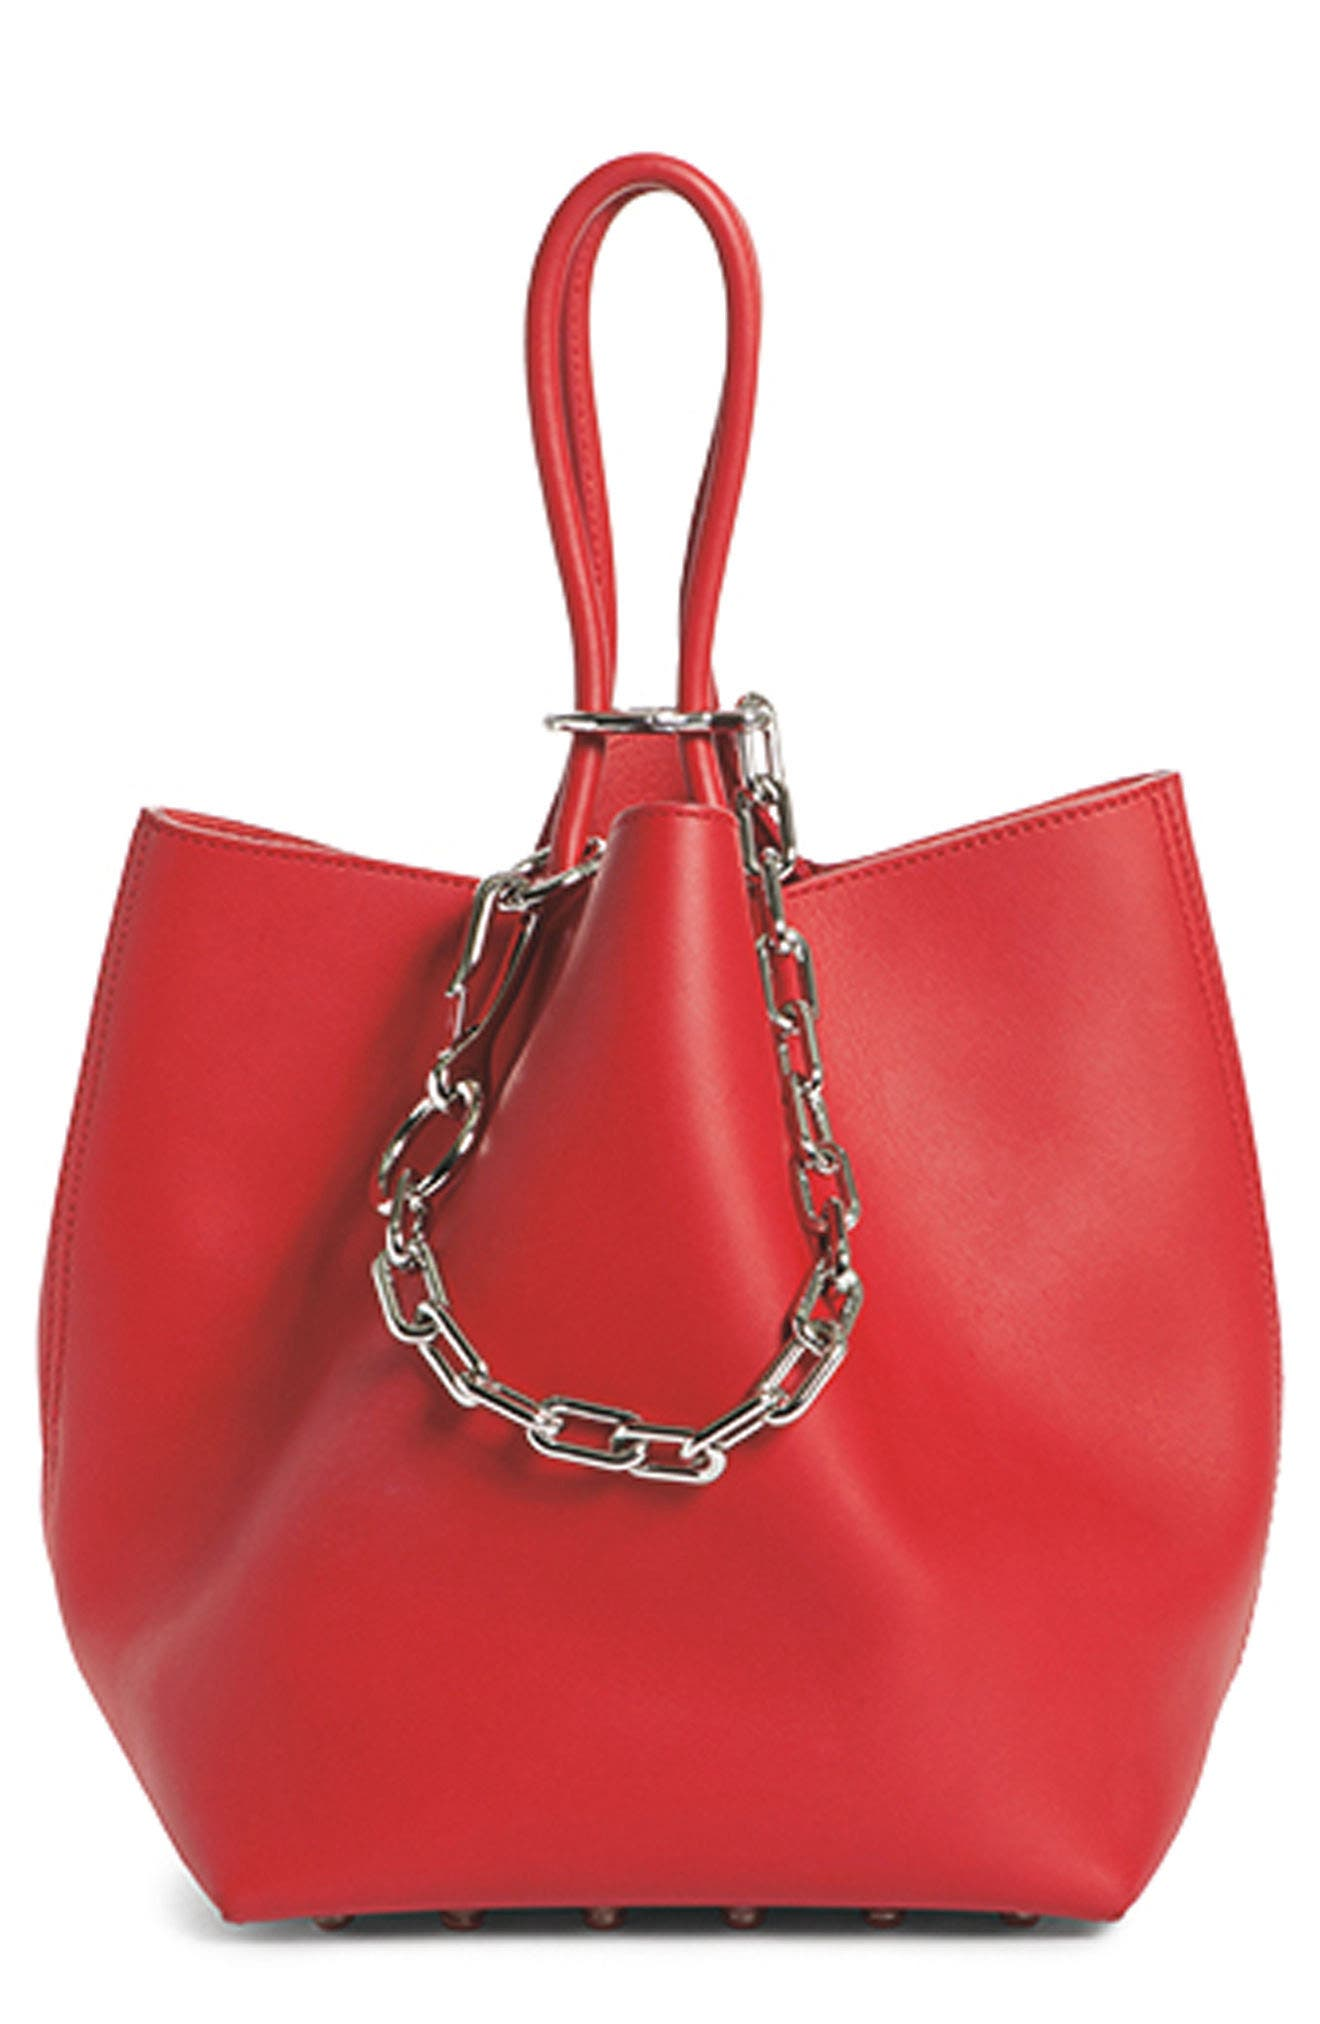 Small Roxy Leather Bucket Bag,                             Alternate thumbnail 8, color,                             601